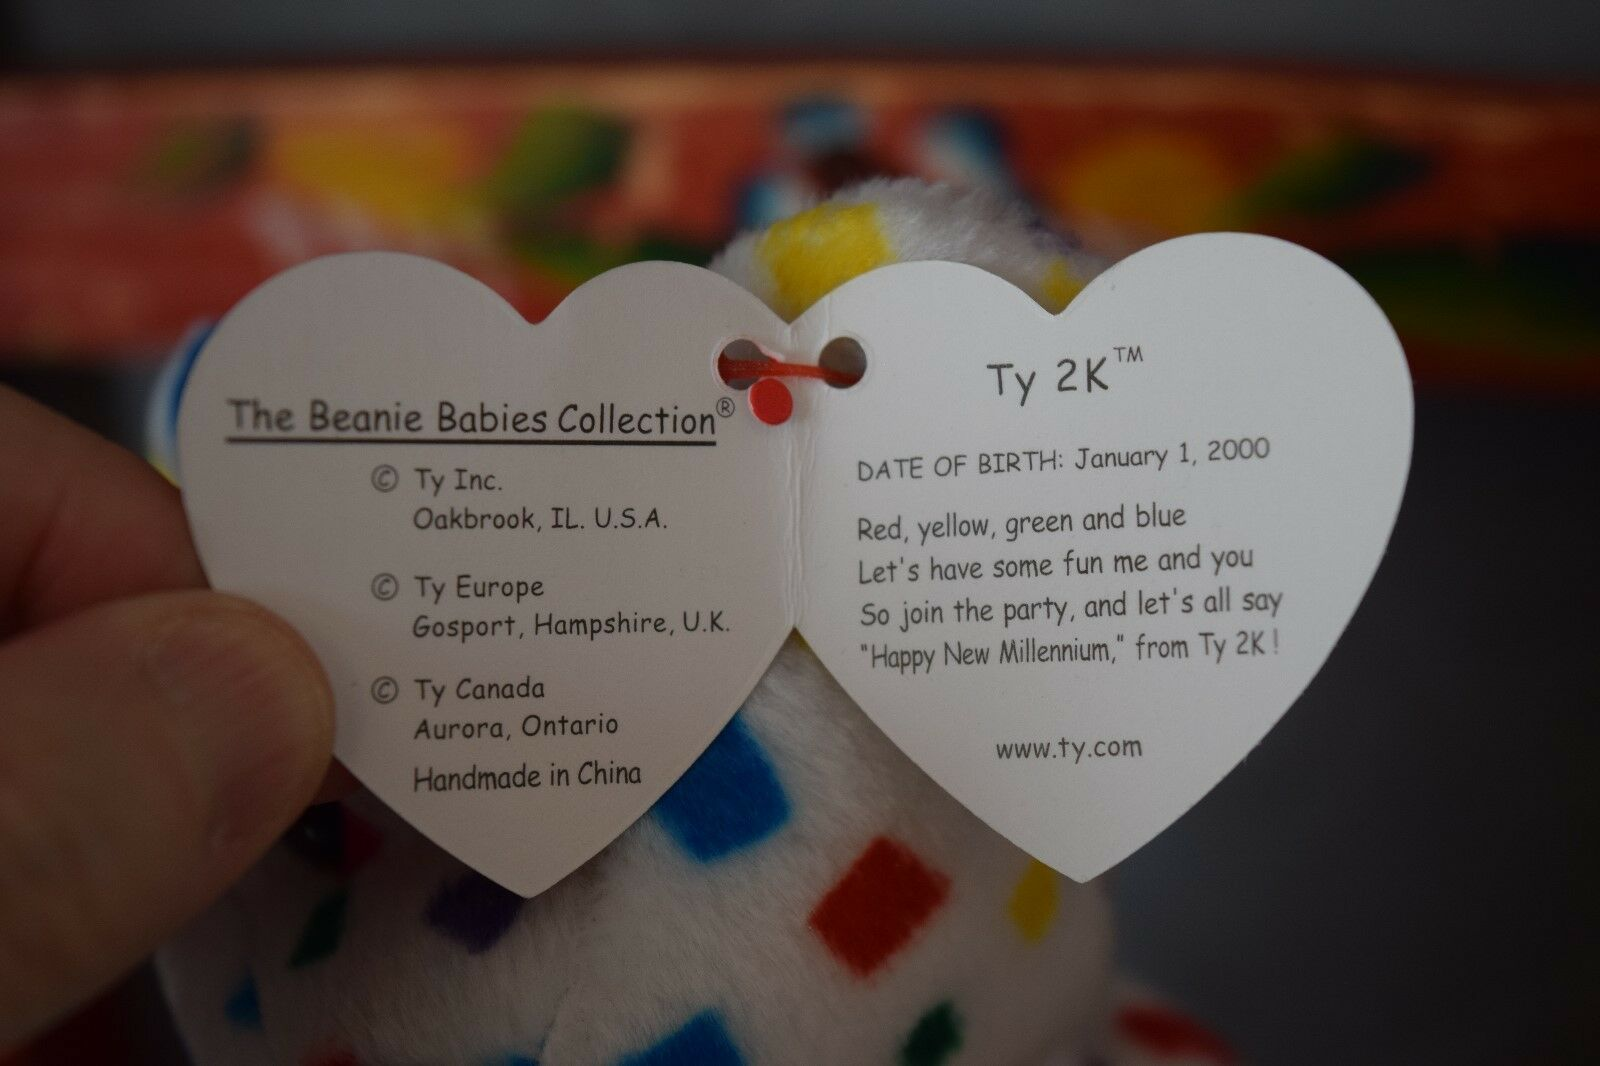 1999 Signature Bear and Ty 2K 2K 2K beanie babies with error, rare tag, mint condition 3057fc